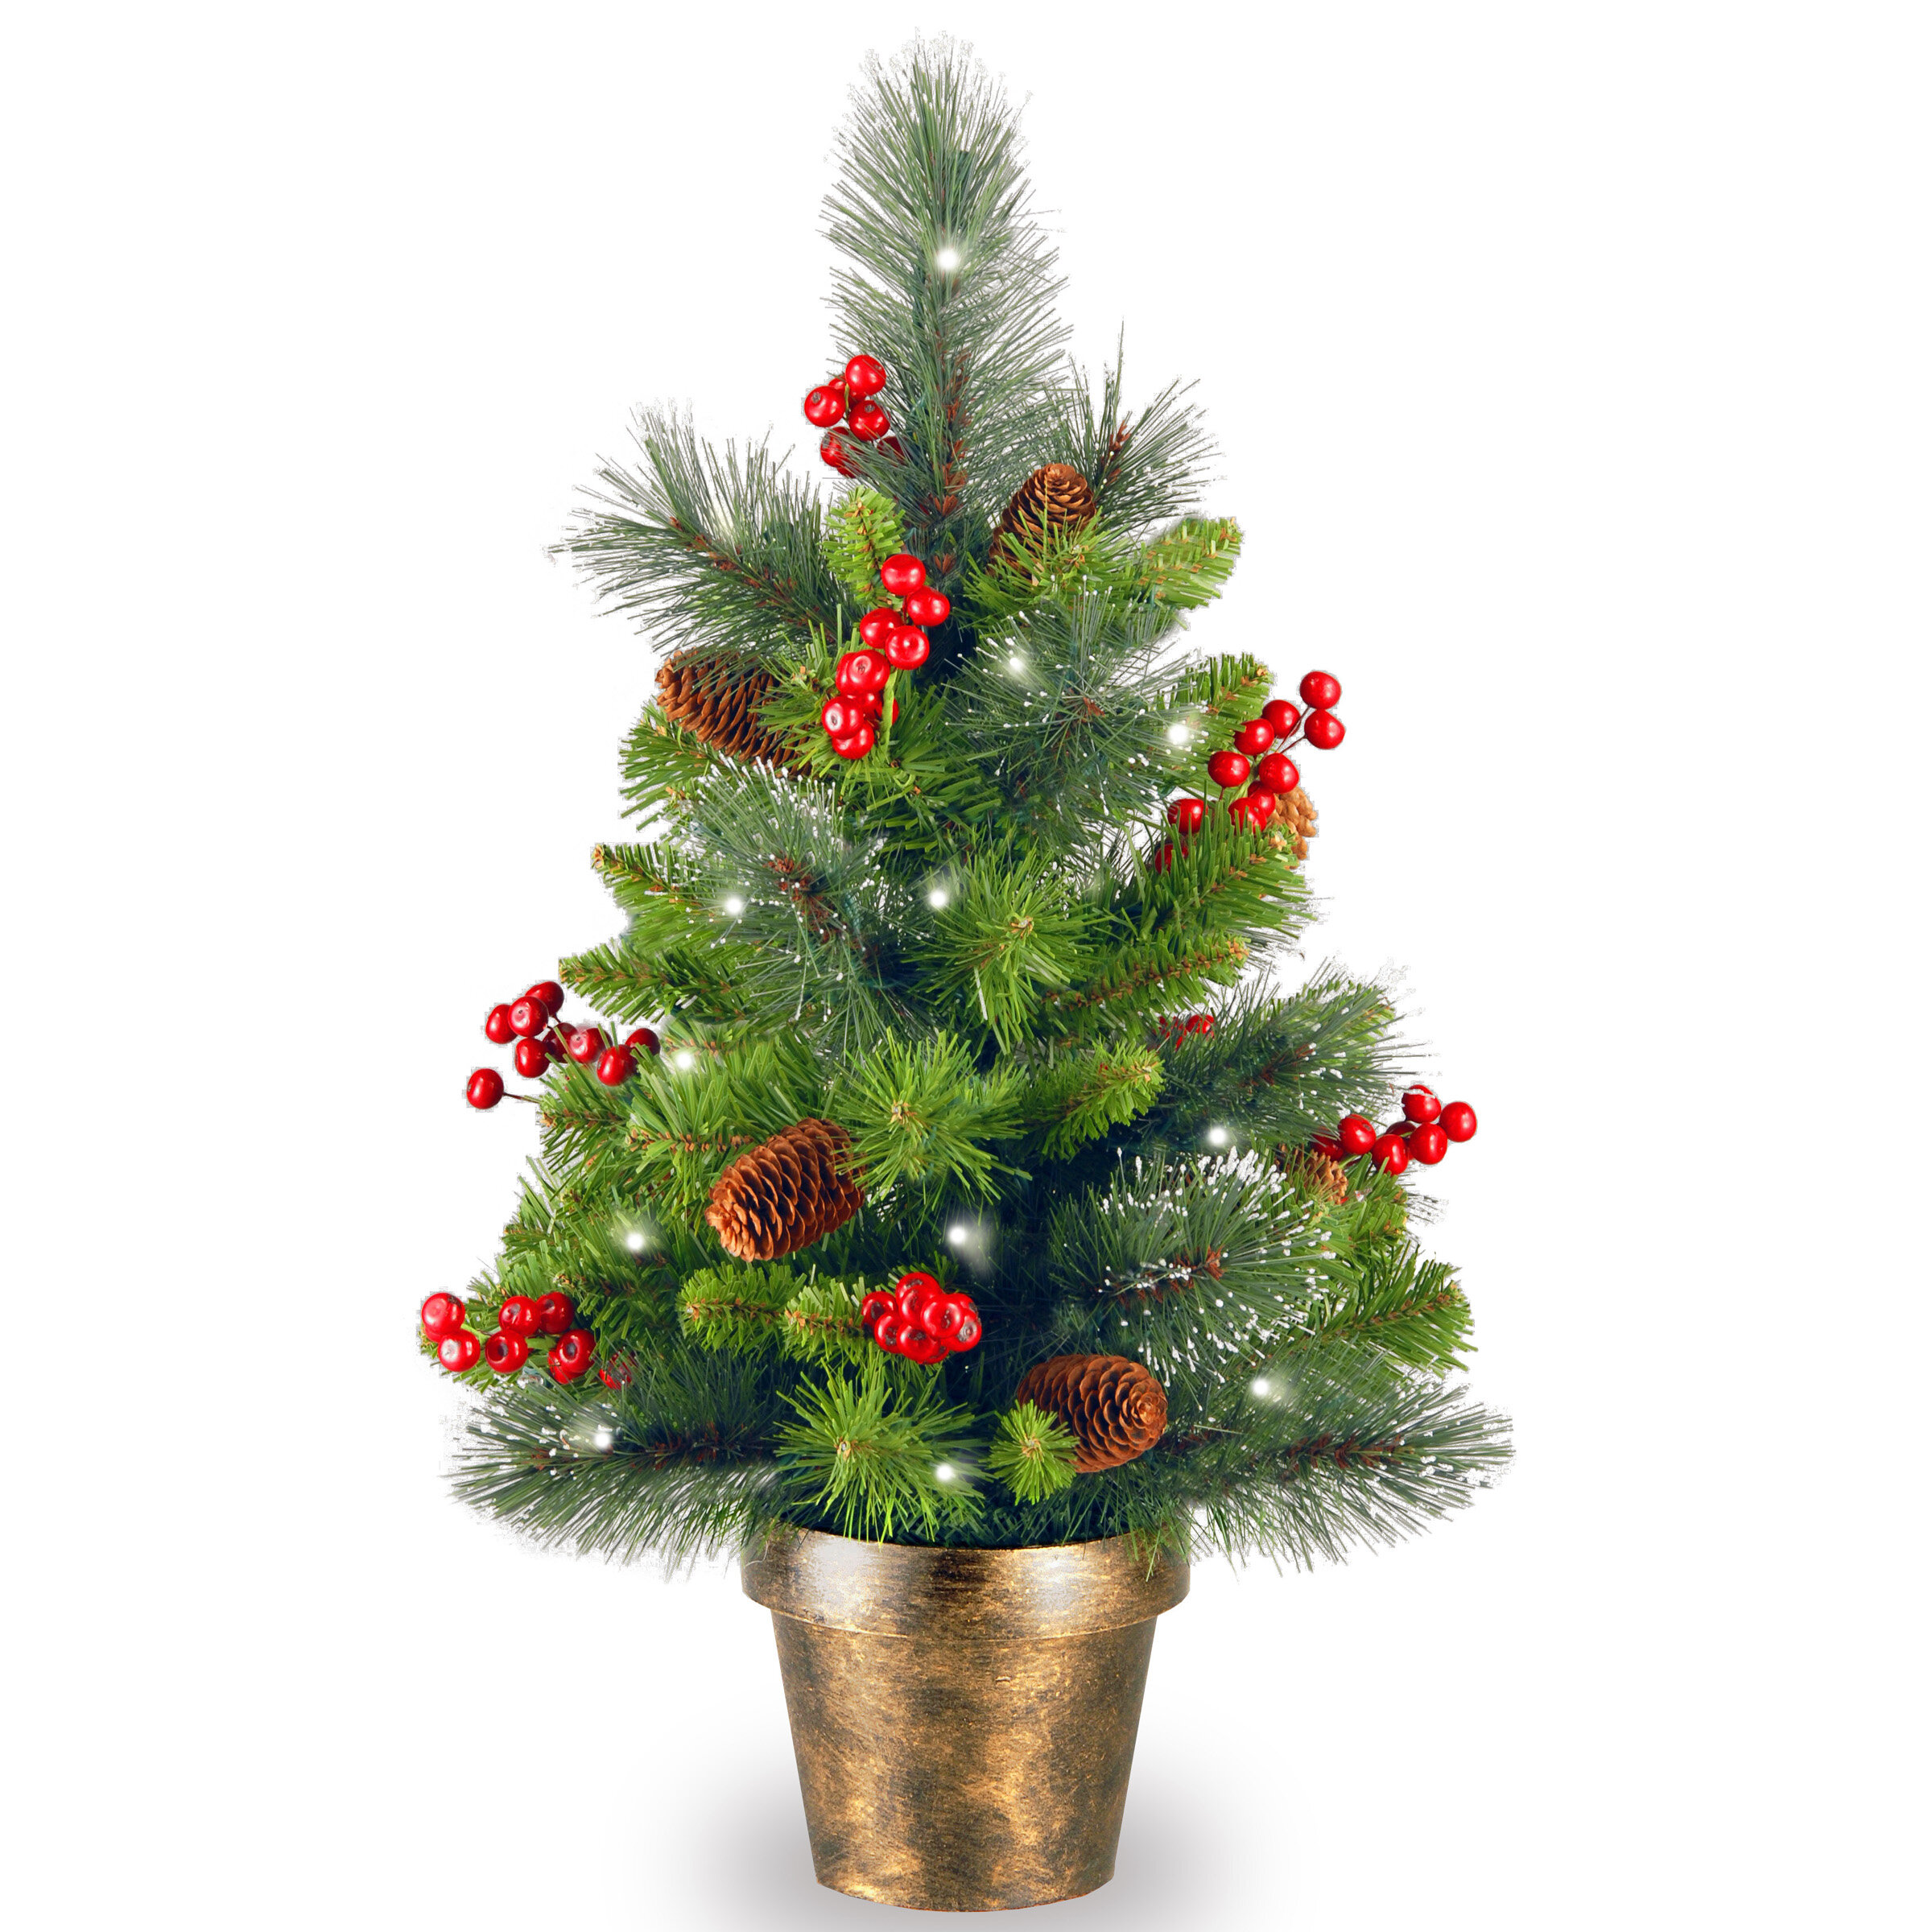 Spruce Small 2 Green Artificial Christmas Tree With 35 White Lights Led Reviews Joss Main